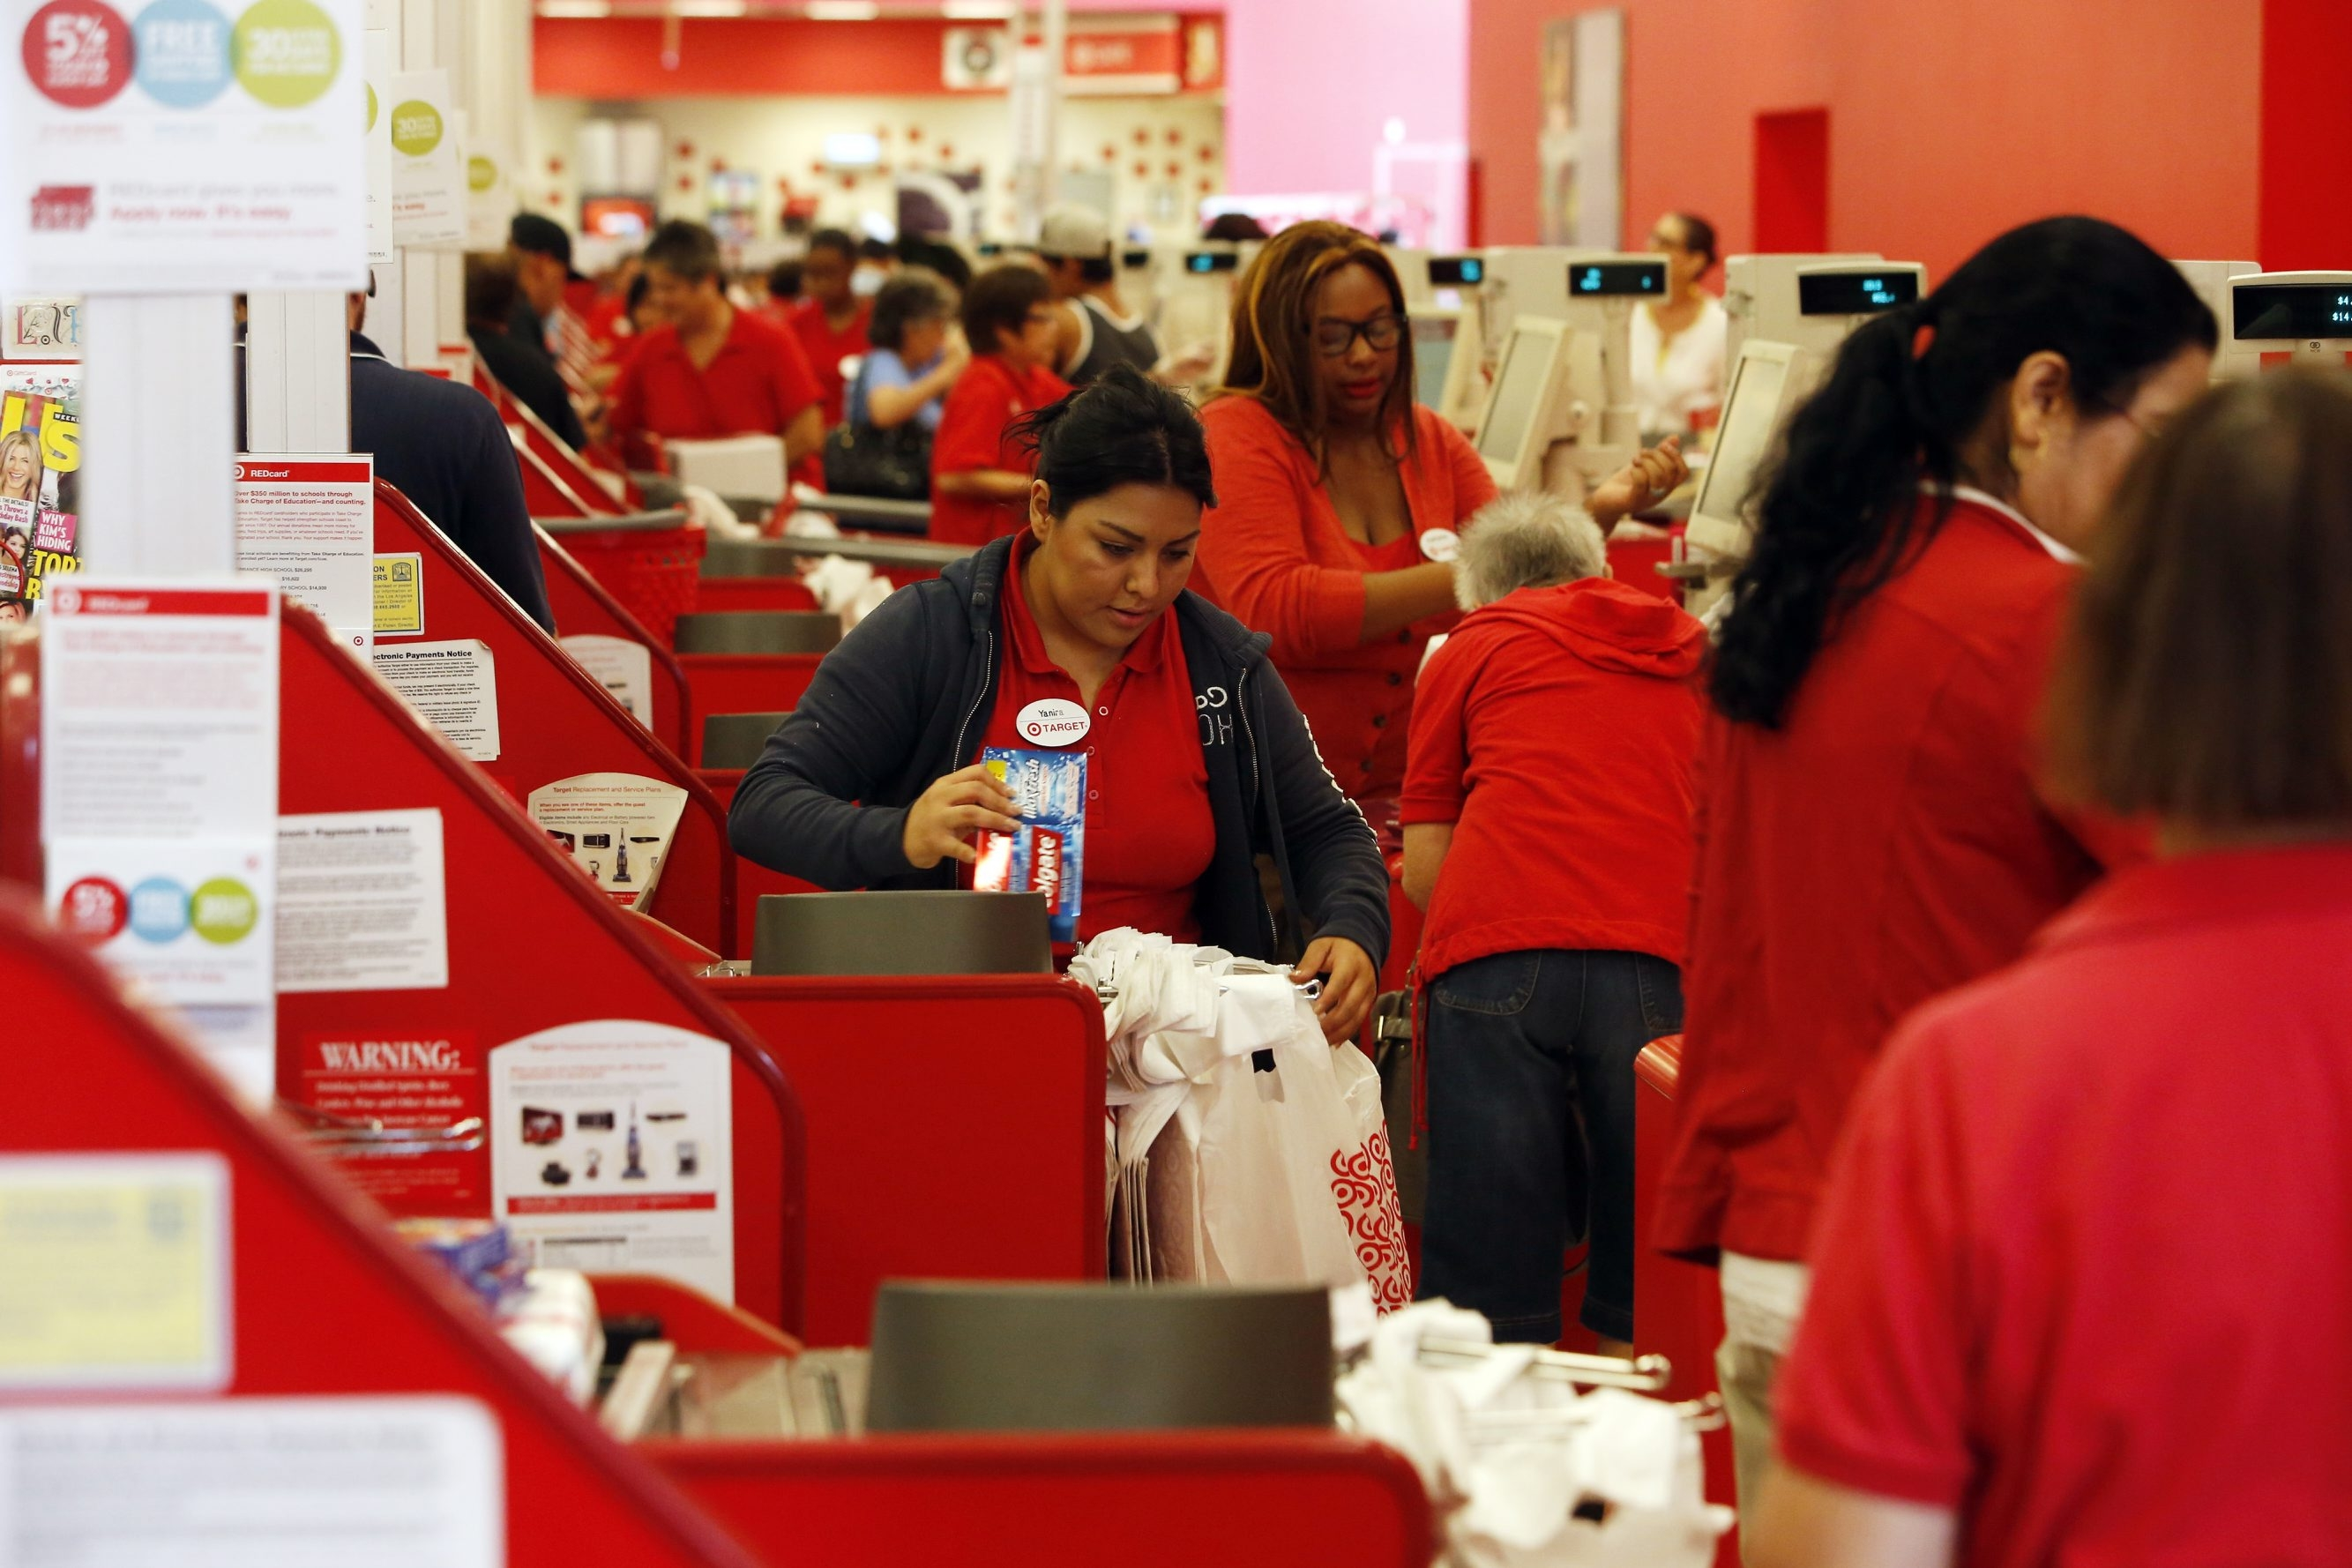 Target says it will pay employees who work on Thanksgiving Day time and a half.